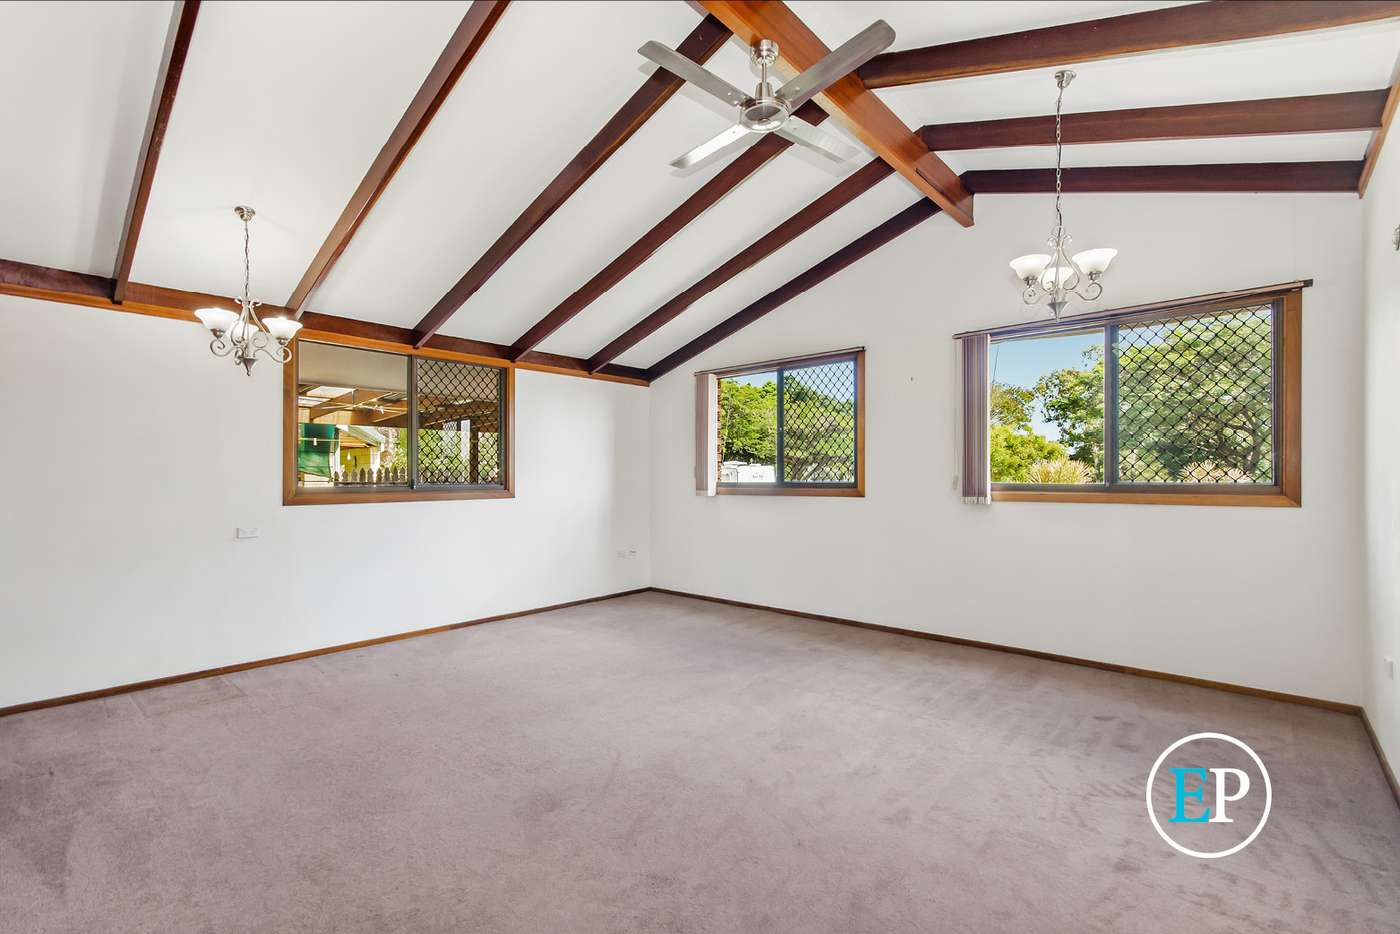 Fifth view of Homely house listing, 15 Serissa Crescent, Annandale QLD 4814